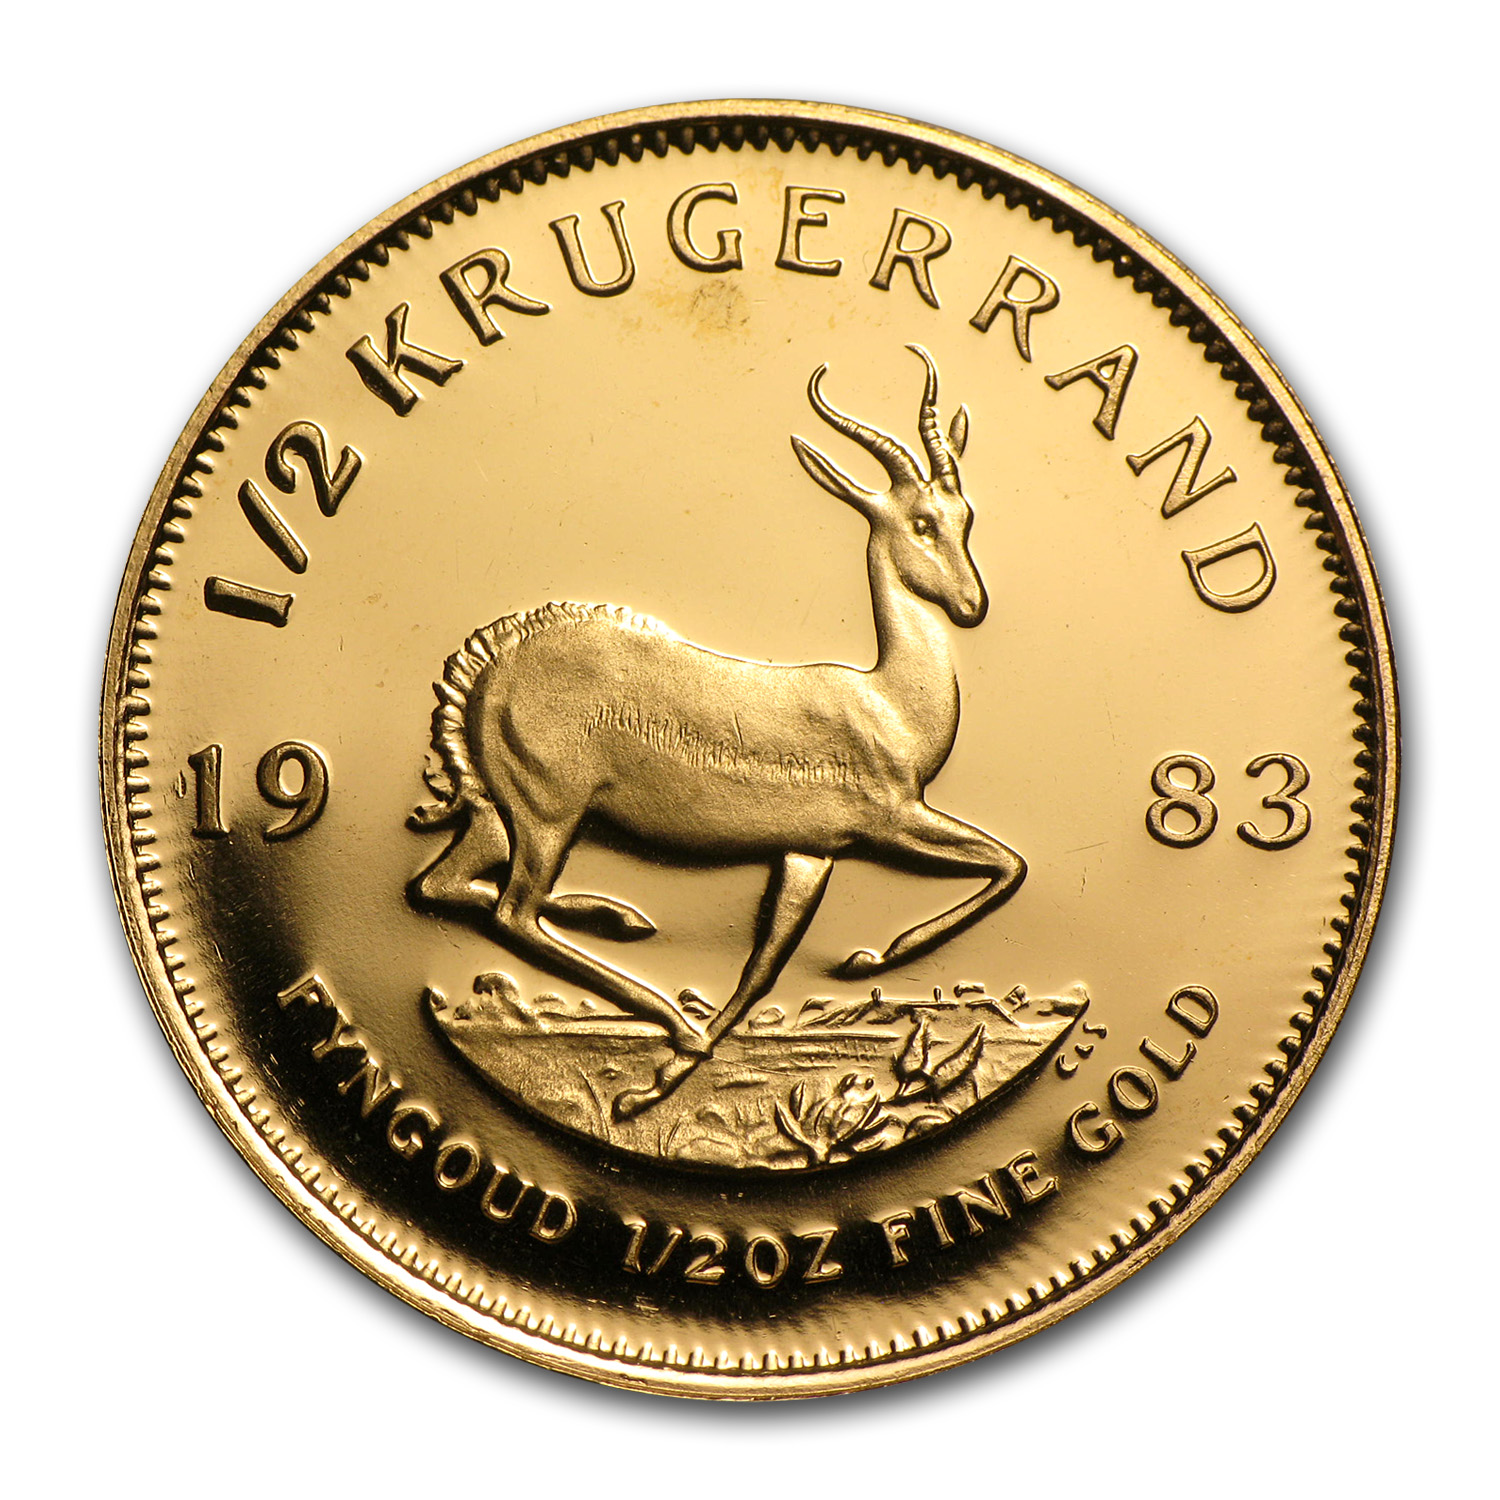 1983 South Africa 1/2 oz Proof Gold Krugerrand